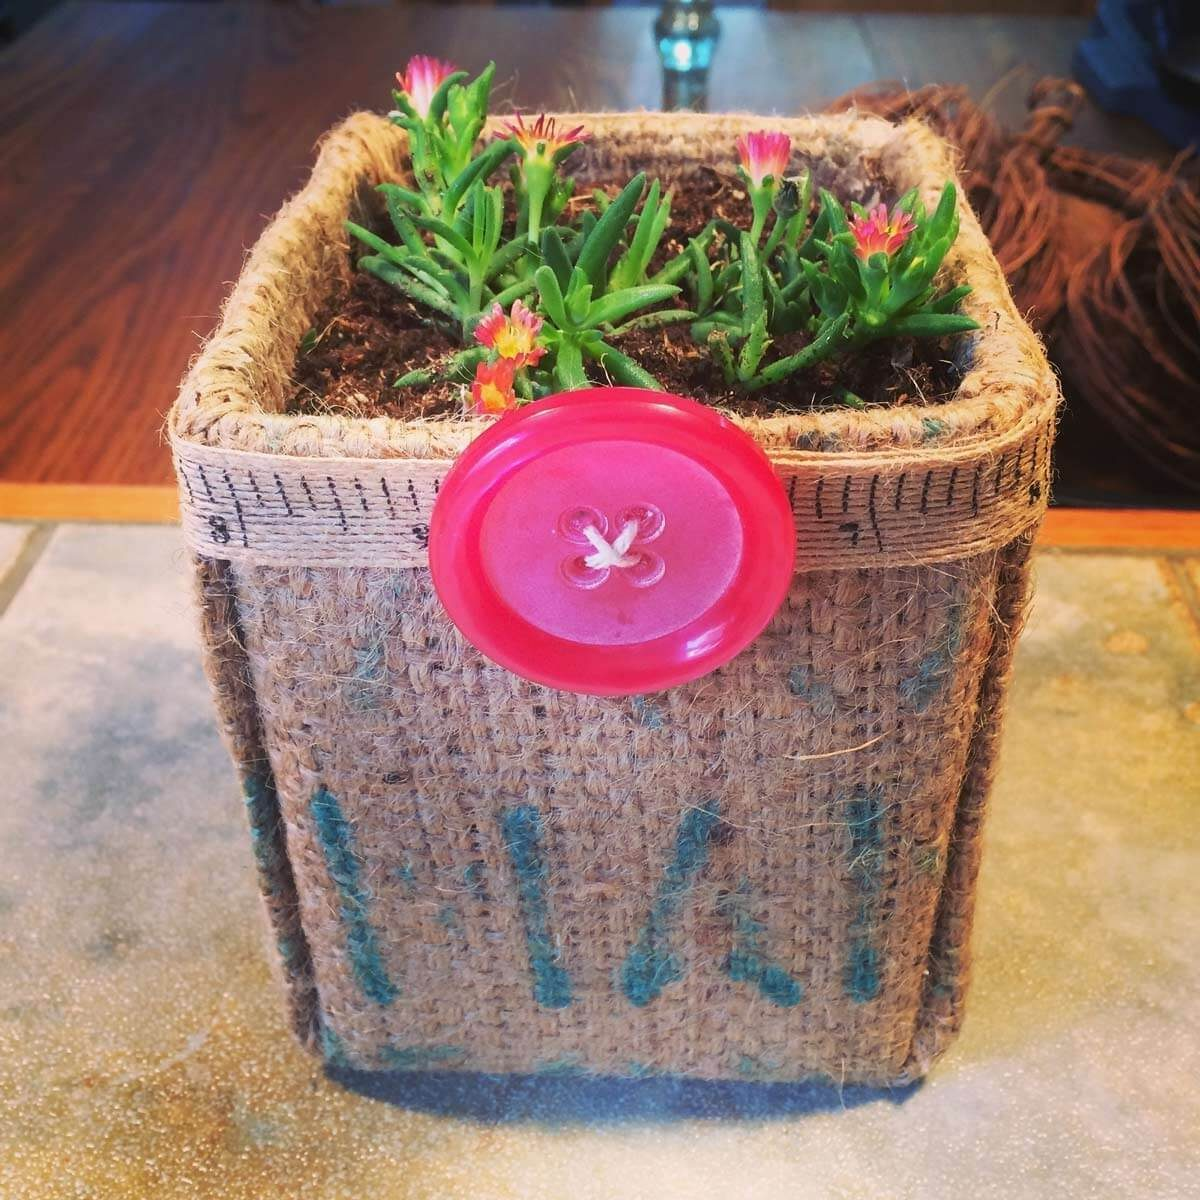 milk carton burlap planter